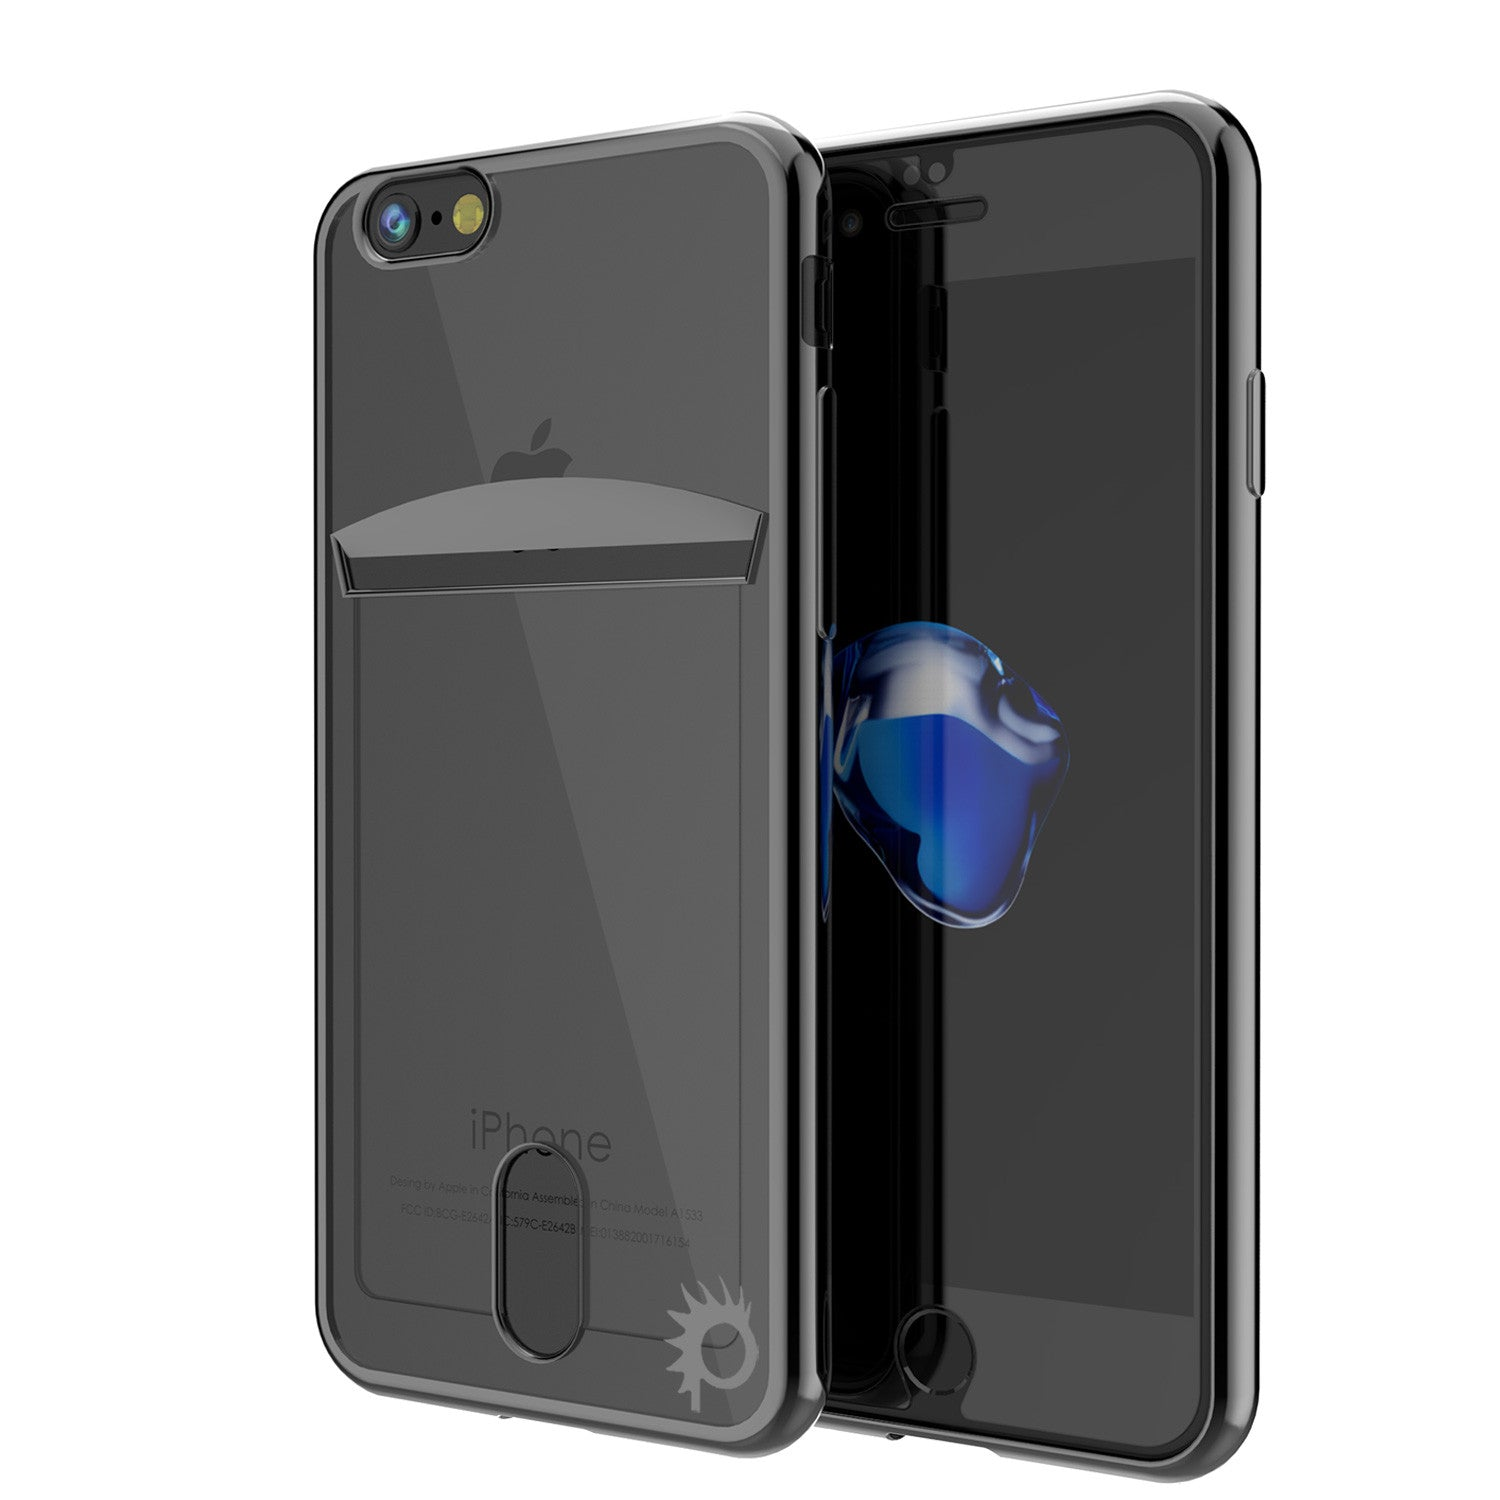 iPhone 7 Case, PUNKCASE® LUCID Black Series | Card Slot | SHIELD Screen Protector | Ultra fit